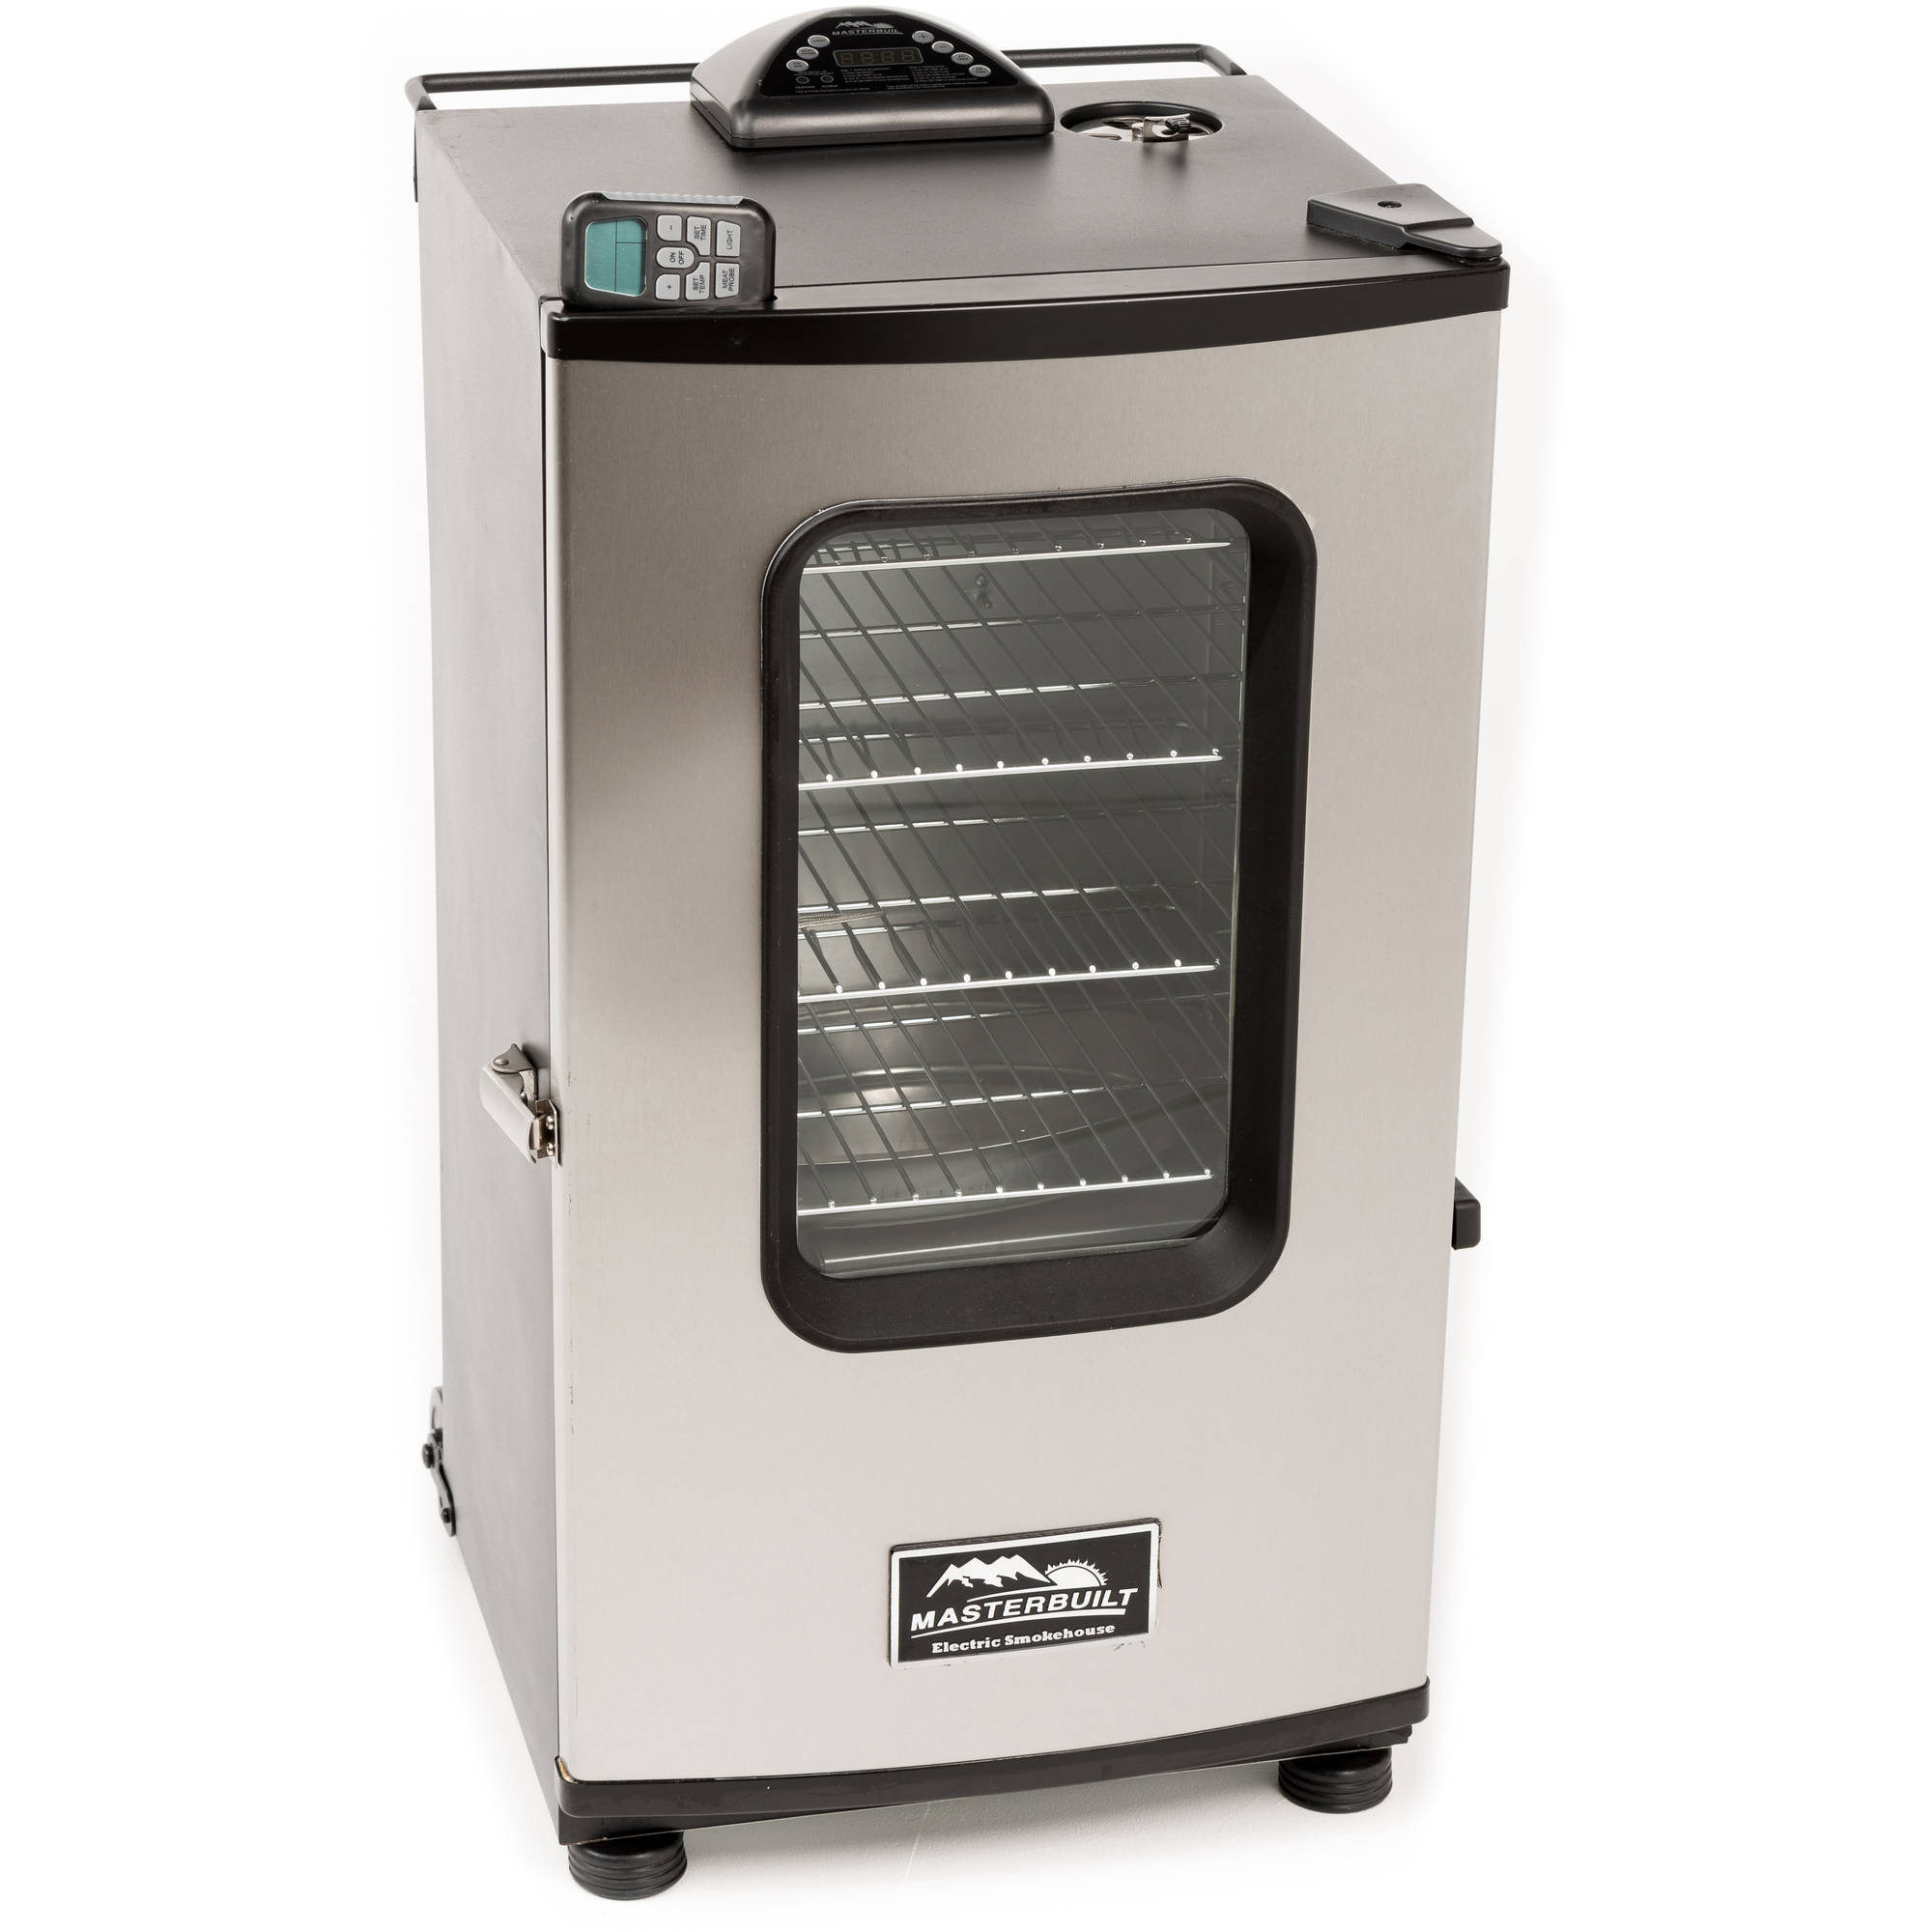 "Masterbuilt 30"" Electric Smoker with Window"